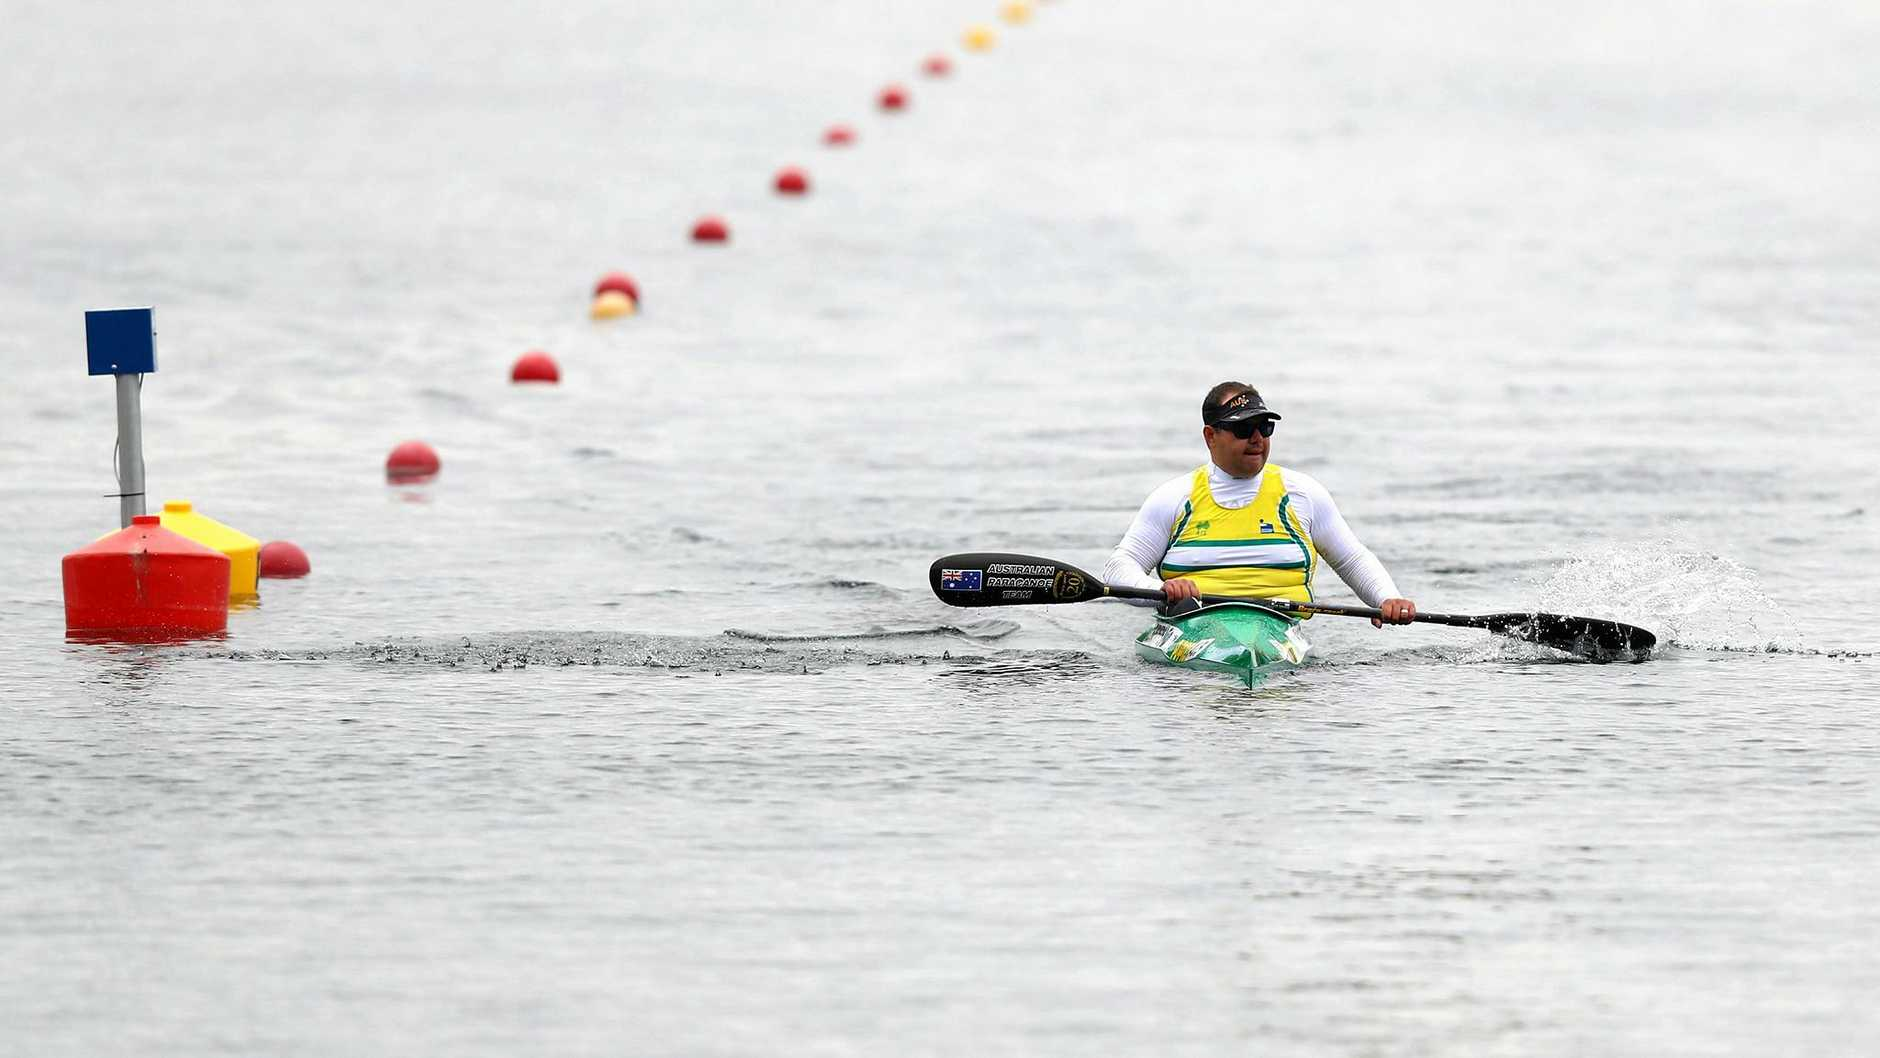 Colin Sieders of Australia looks on after competing in the European canoe sprint Paralympic qualifying event in Duisburg, Germany, in May.